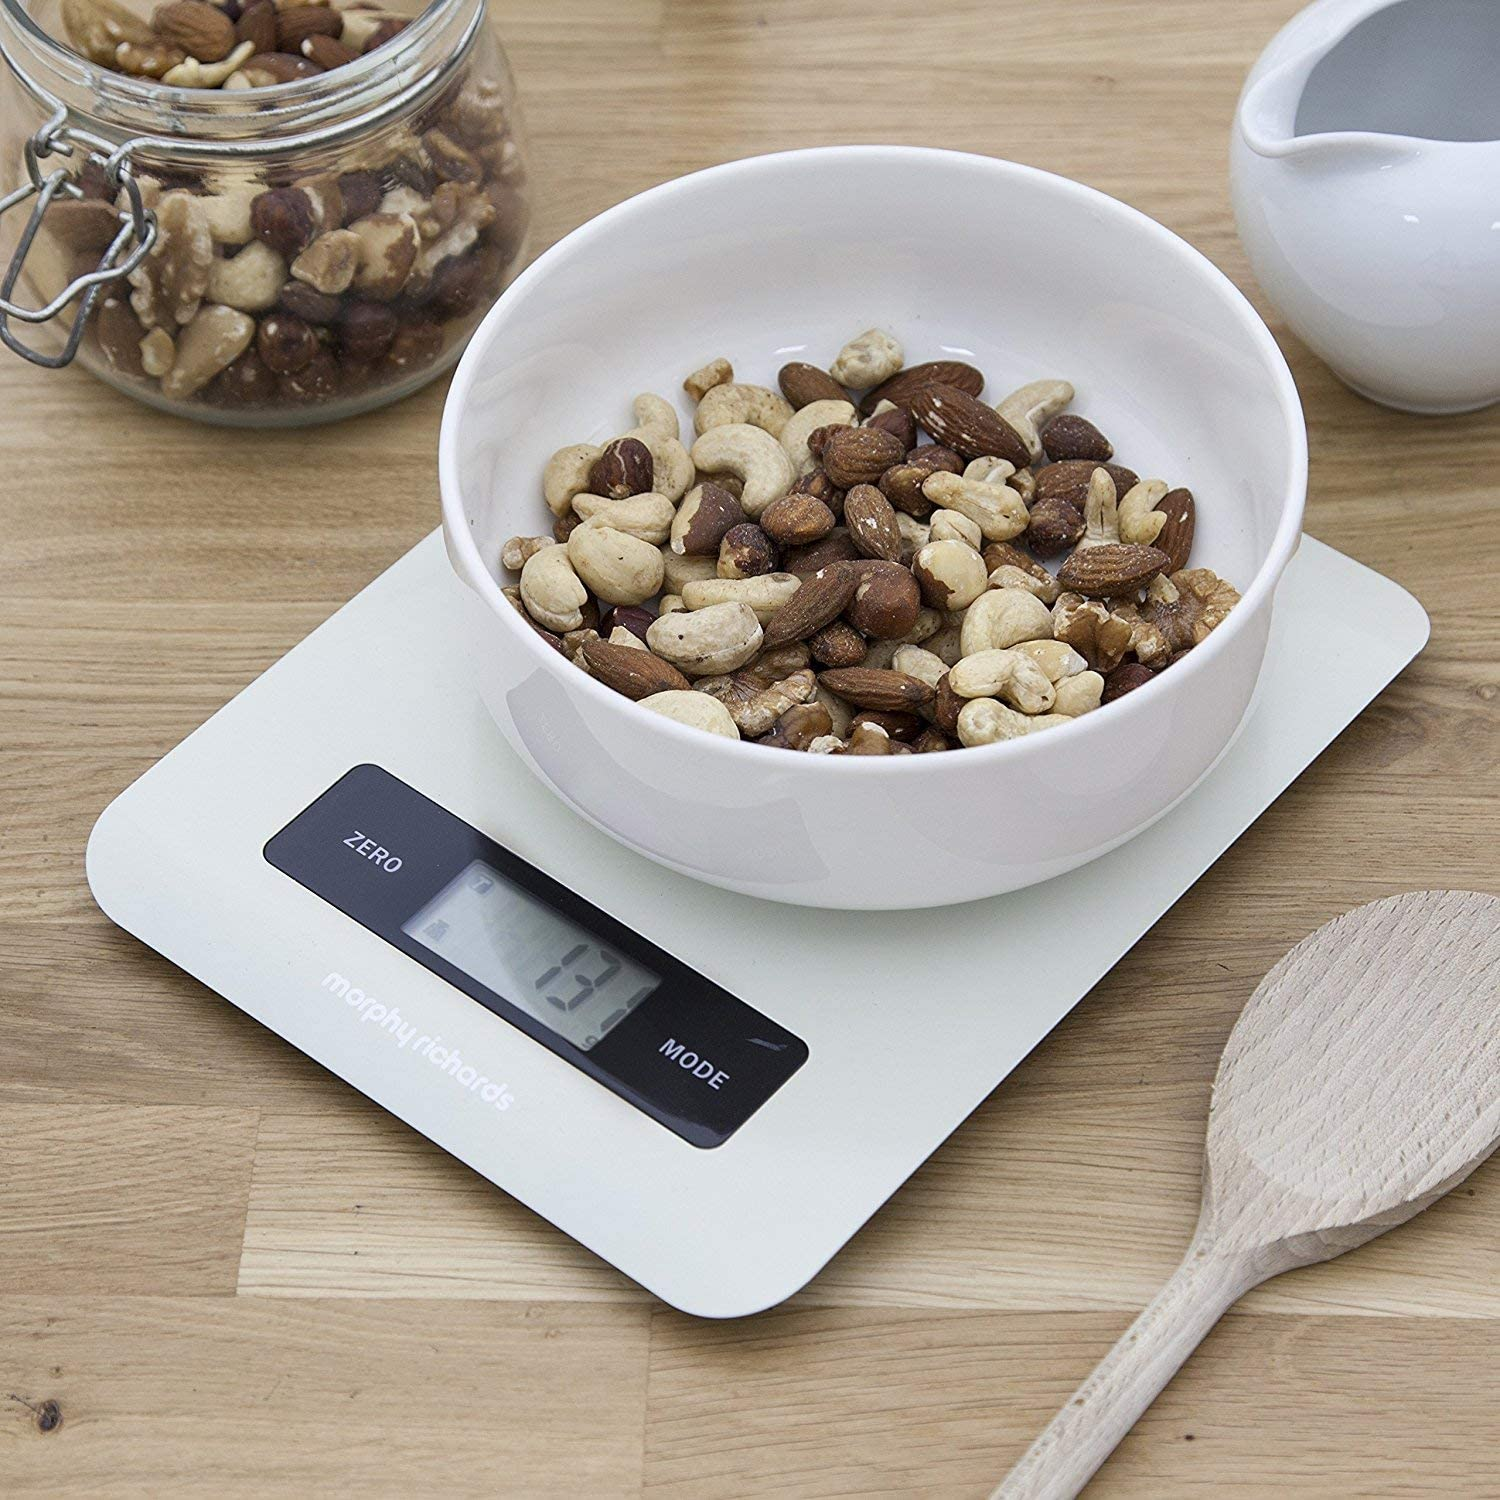 Morphy Richards Kitchen Scales, Accents Range, Digital Kitchen Scales, Touch Screen Stainless Steel, Ivory Ivory